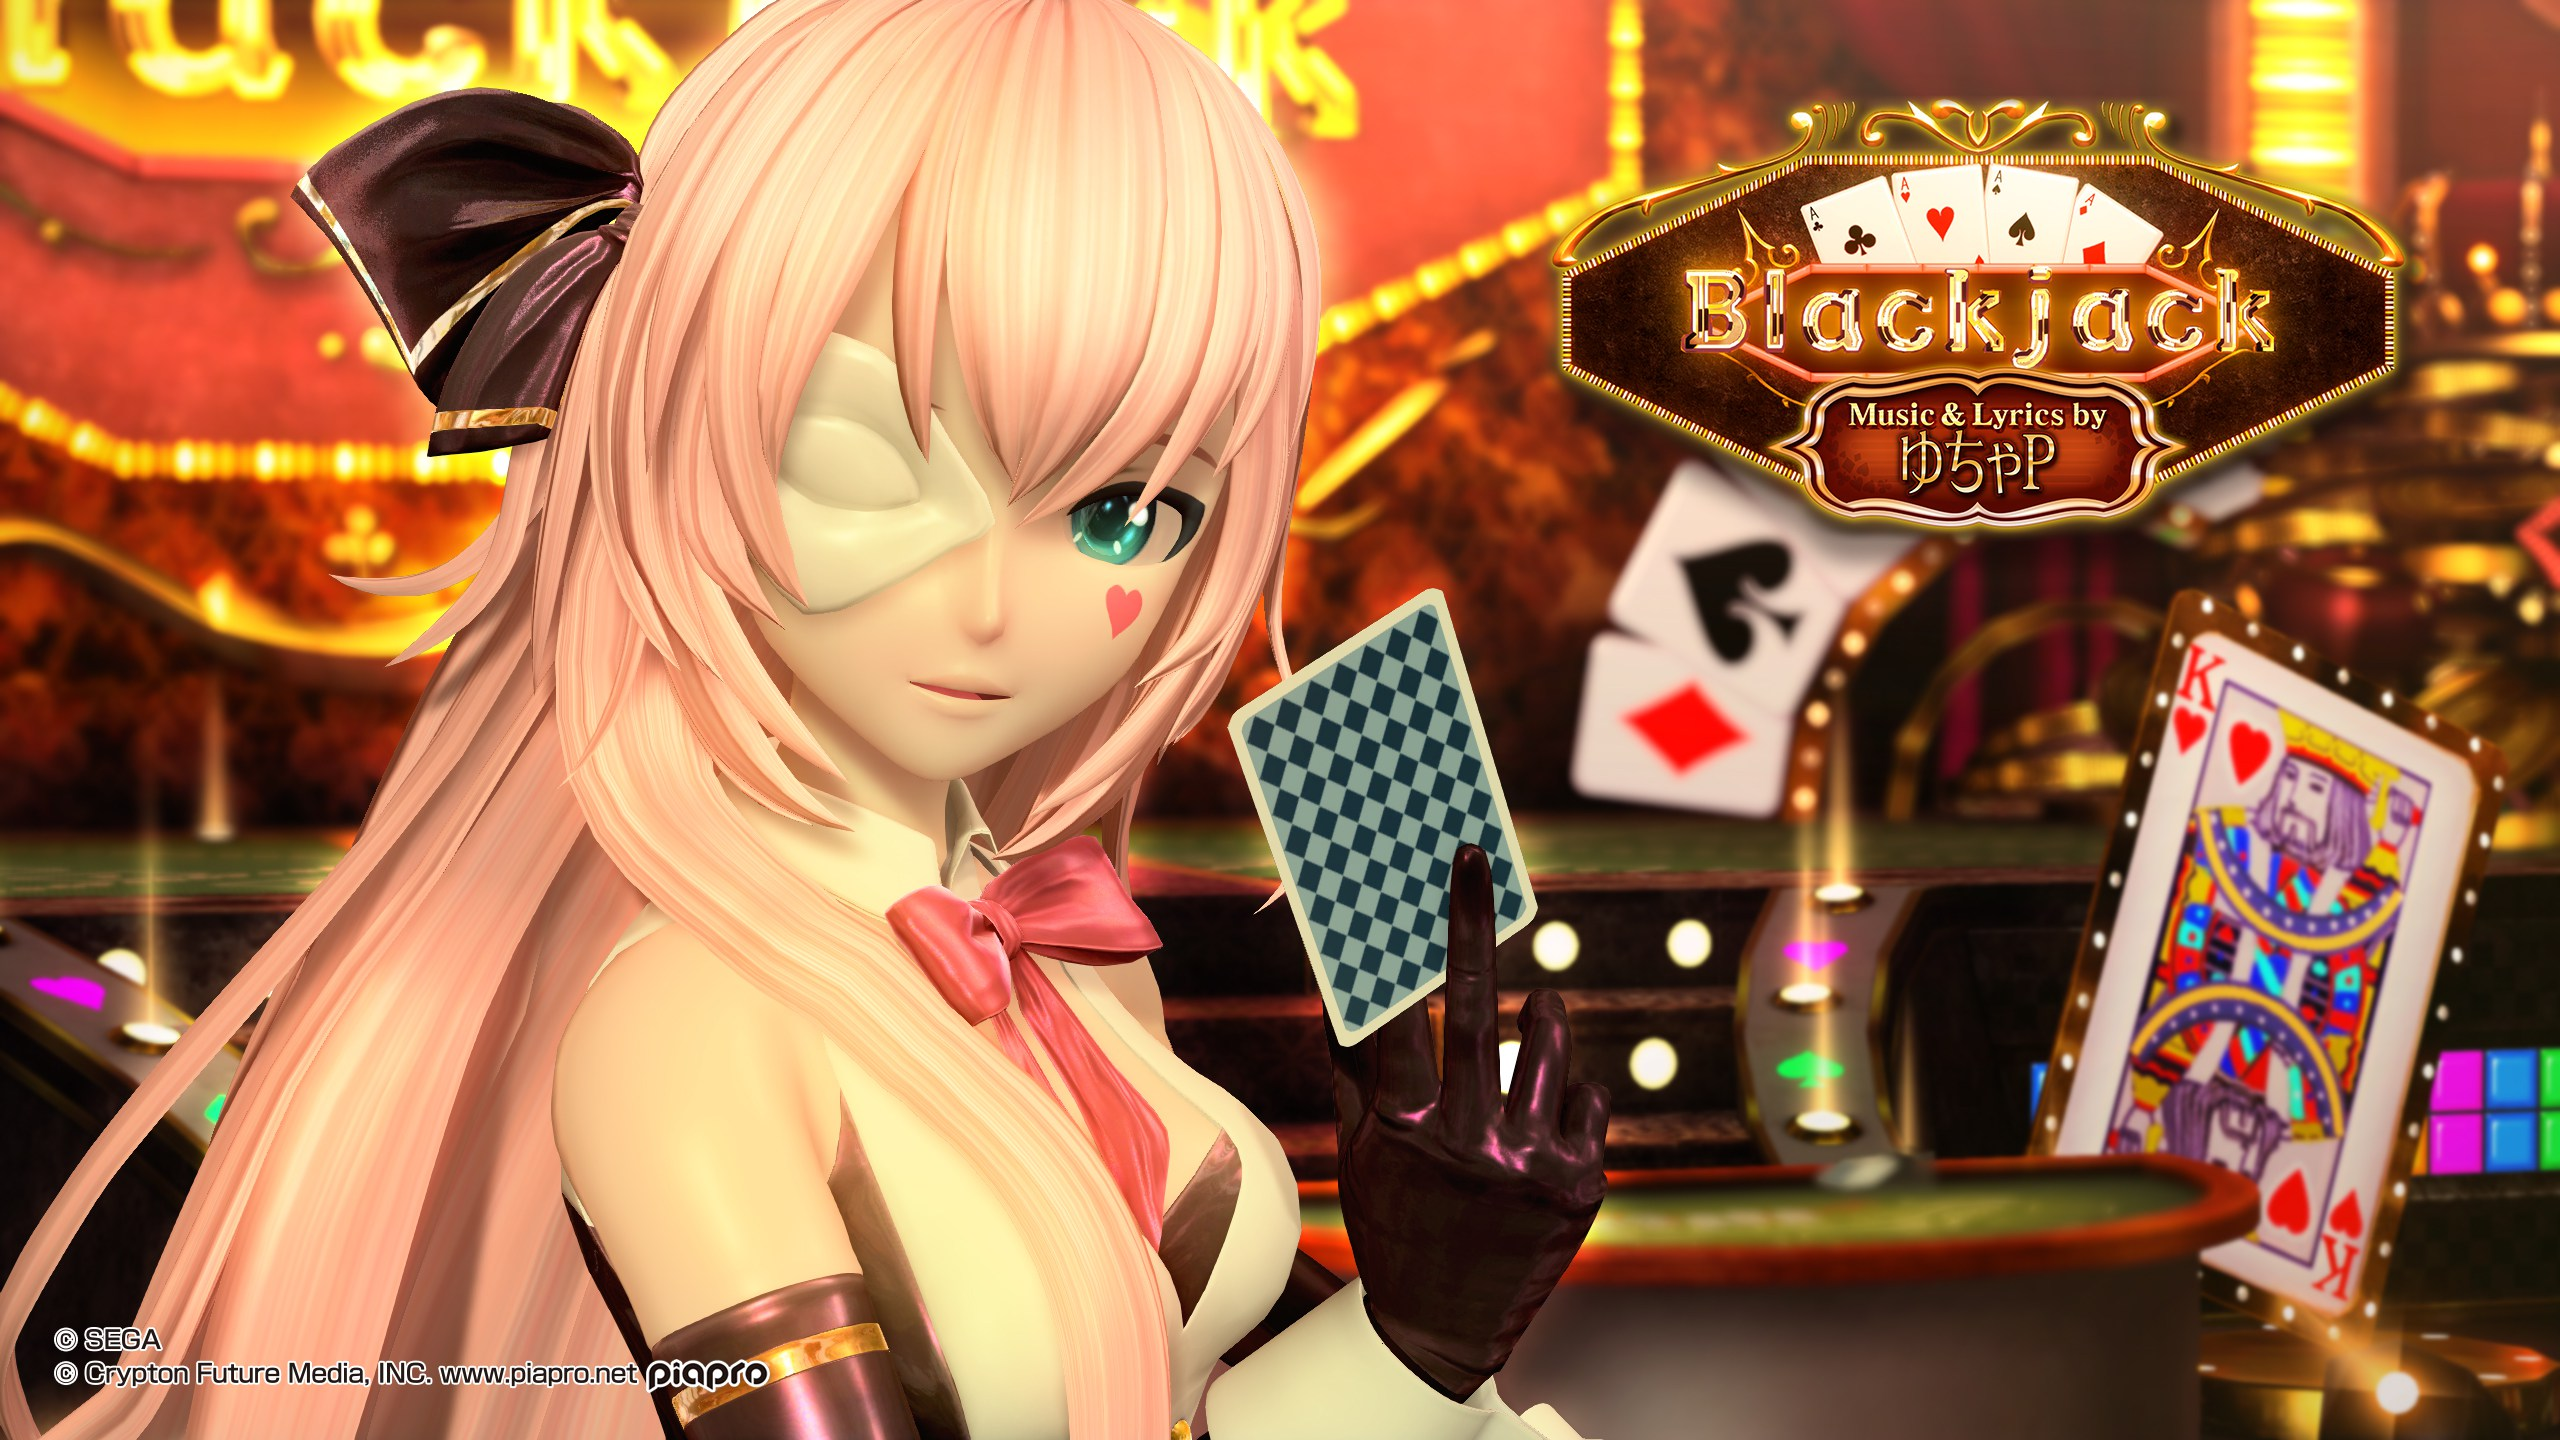 Great Wallpaper Music Tone - Blackjack  You Should Have_175046.jpg